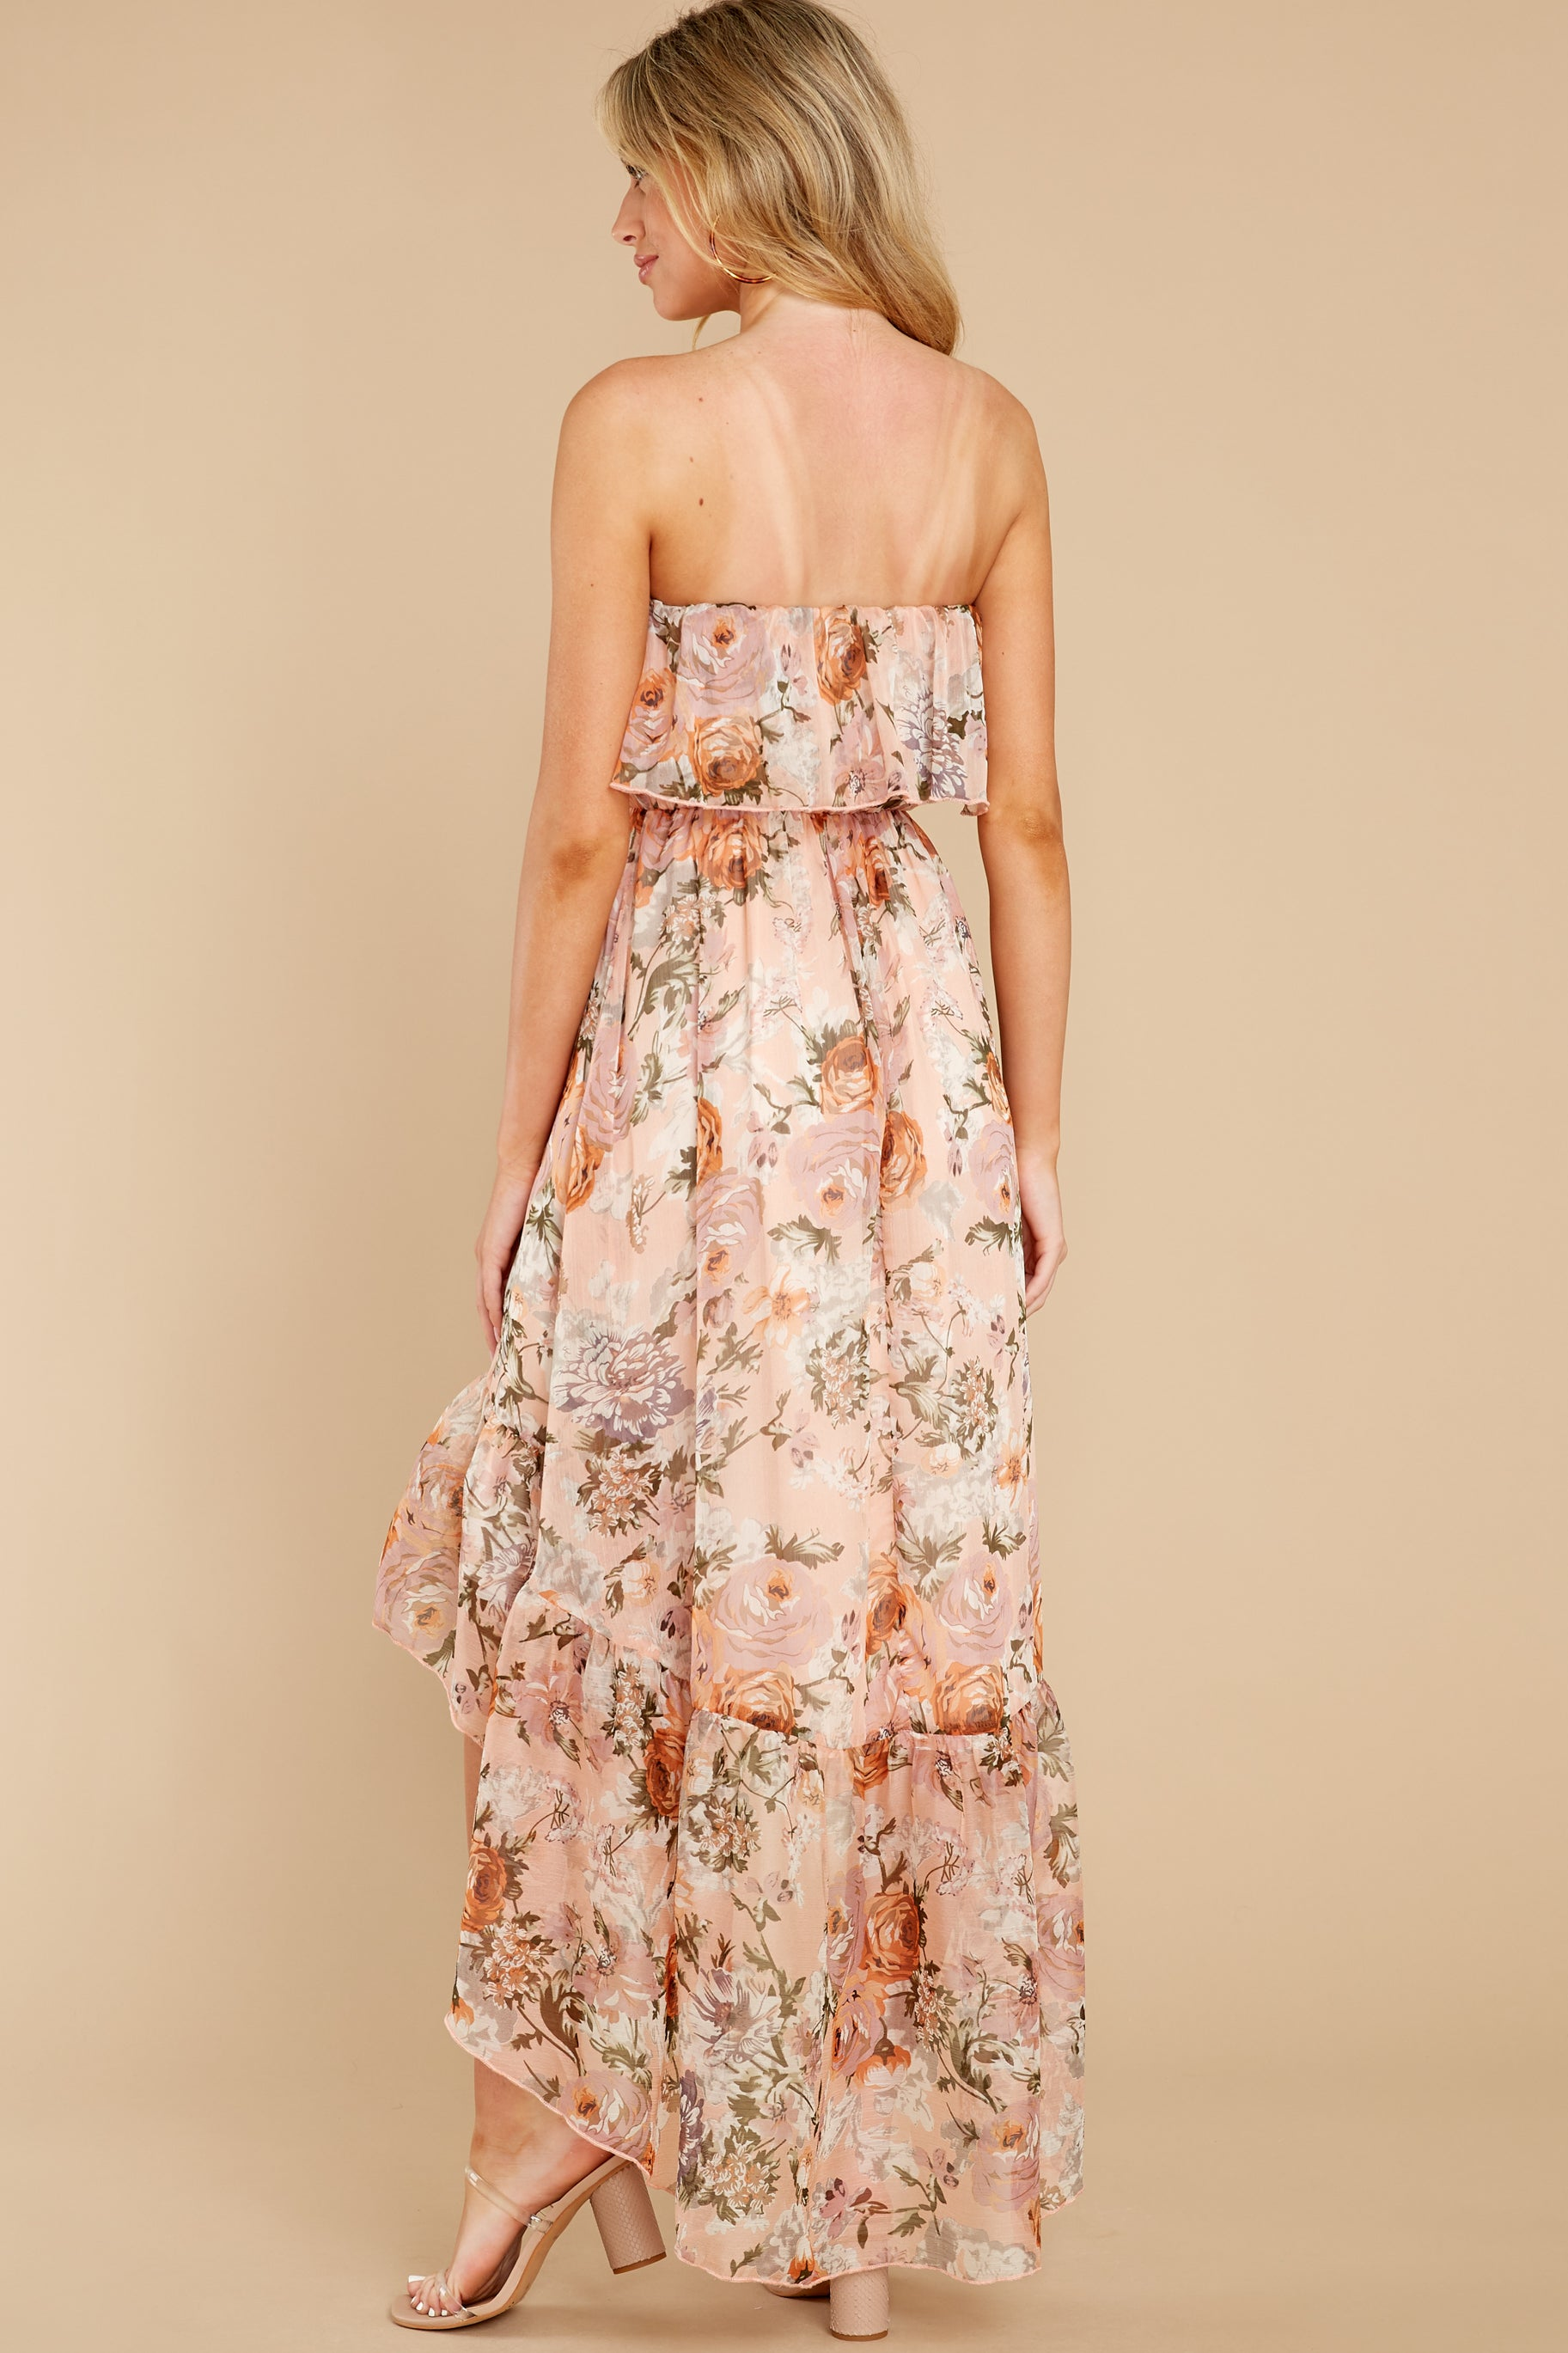 One Sure Way Blush Floral Print High-Low Dress